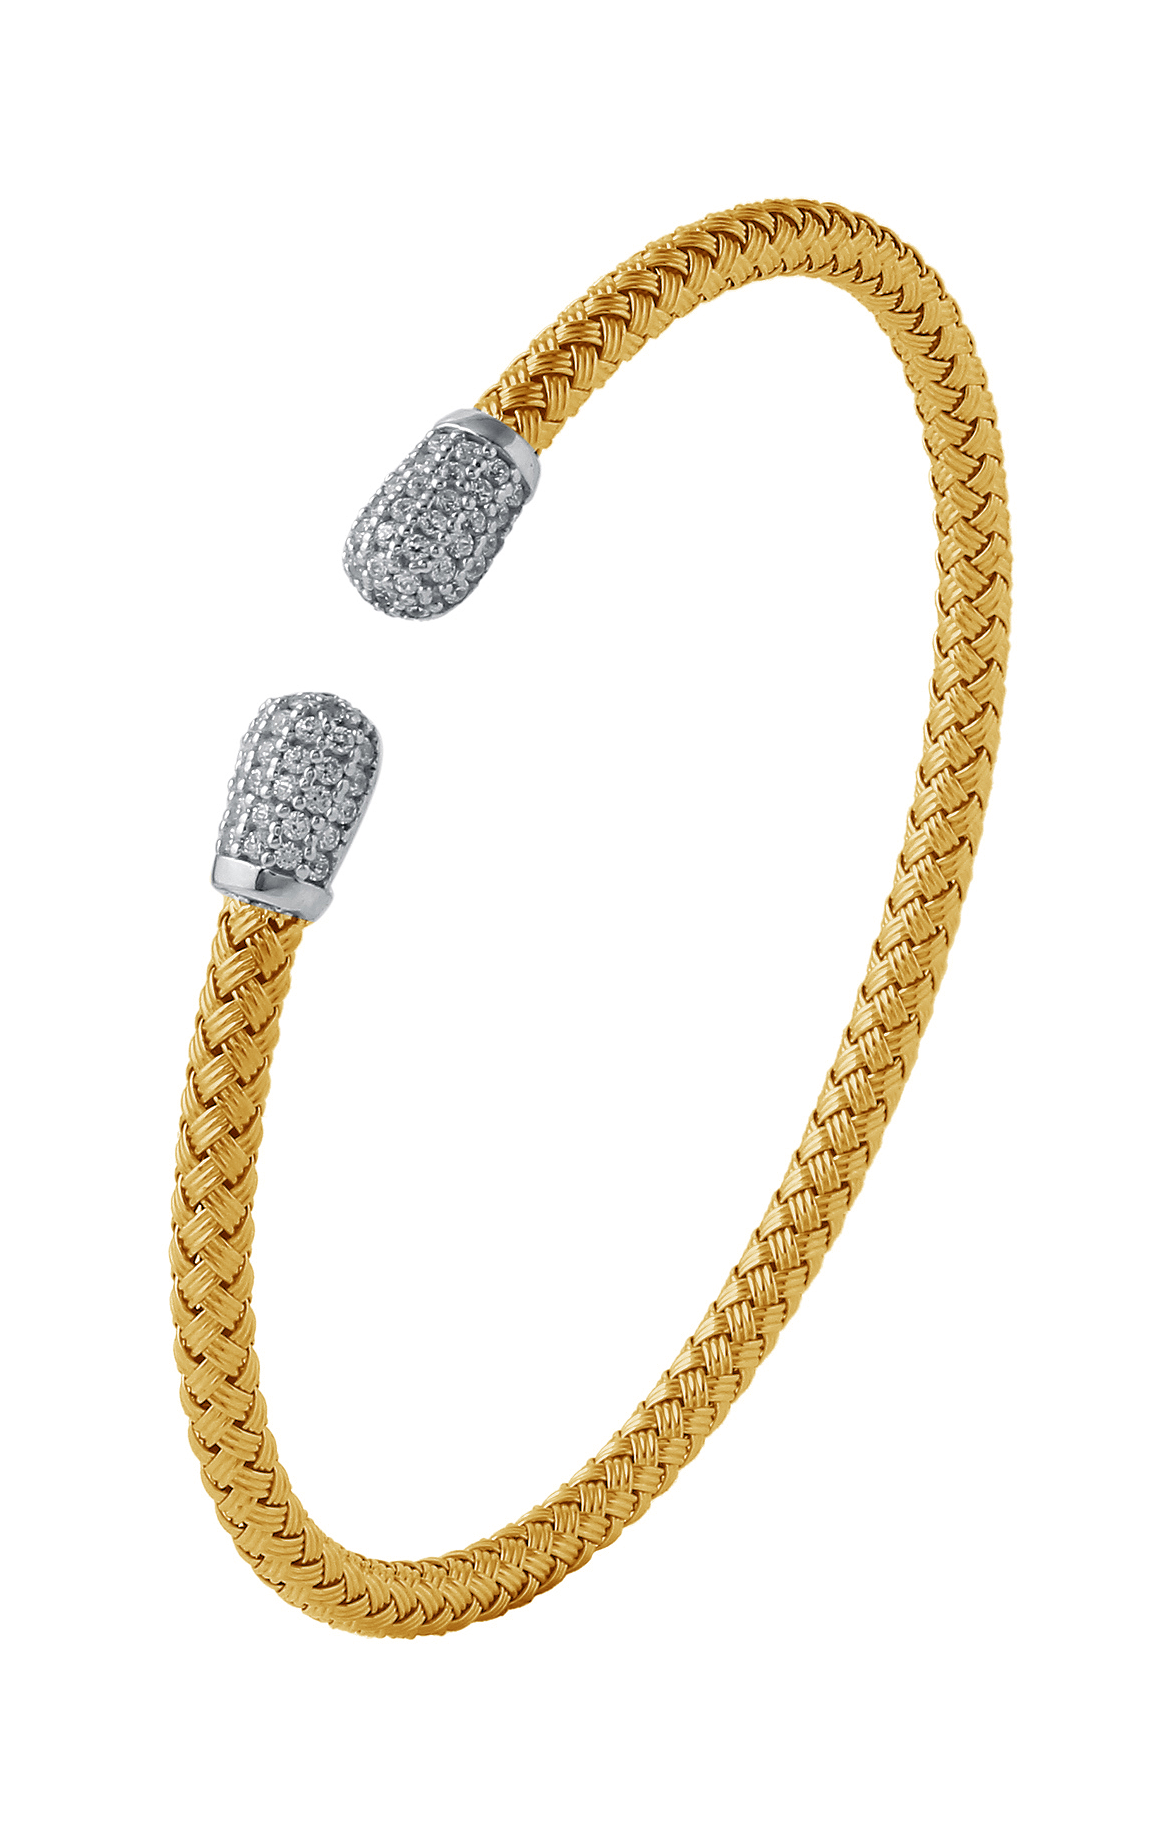 Charles Garnier Bracelet Paolo Collection MLC8057YWZ product image